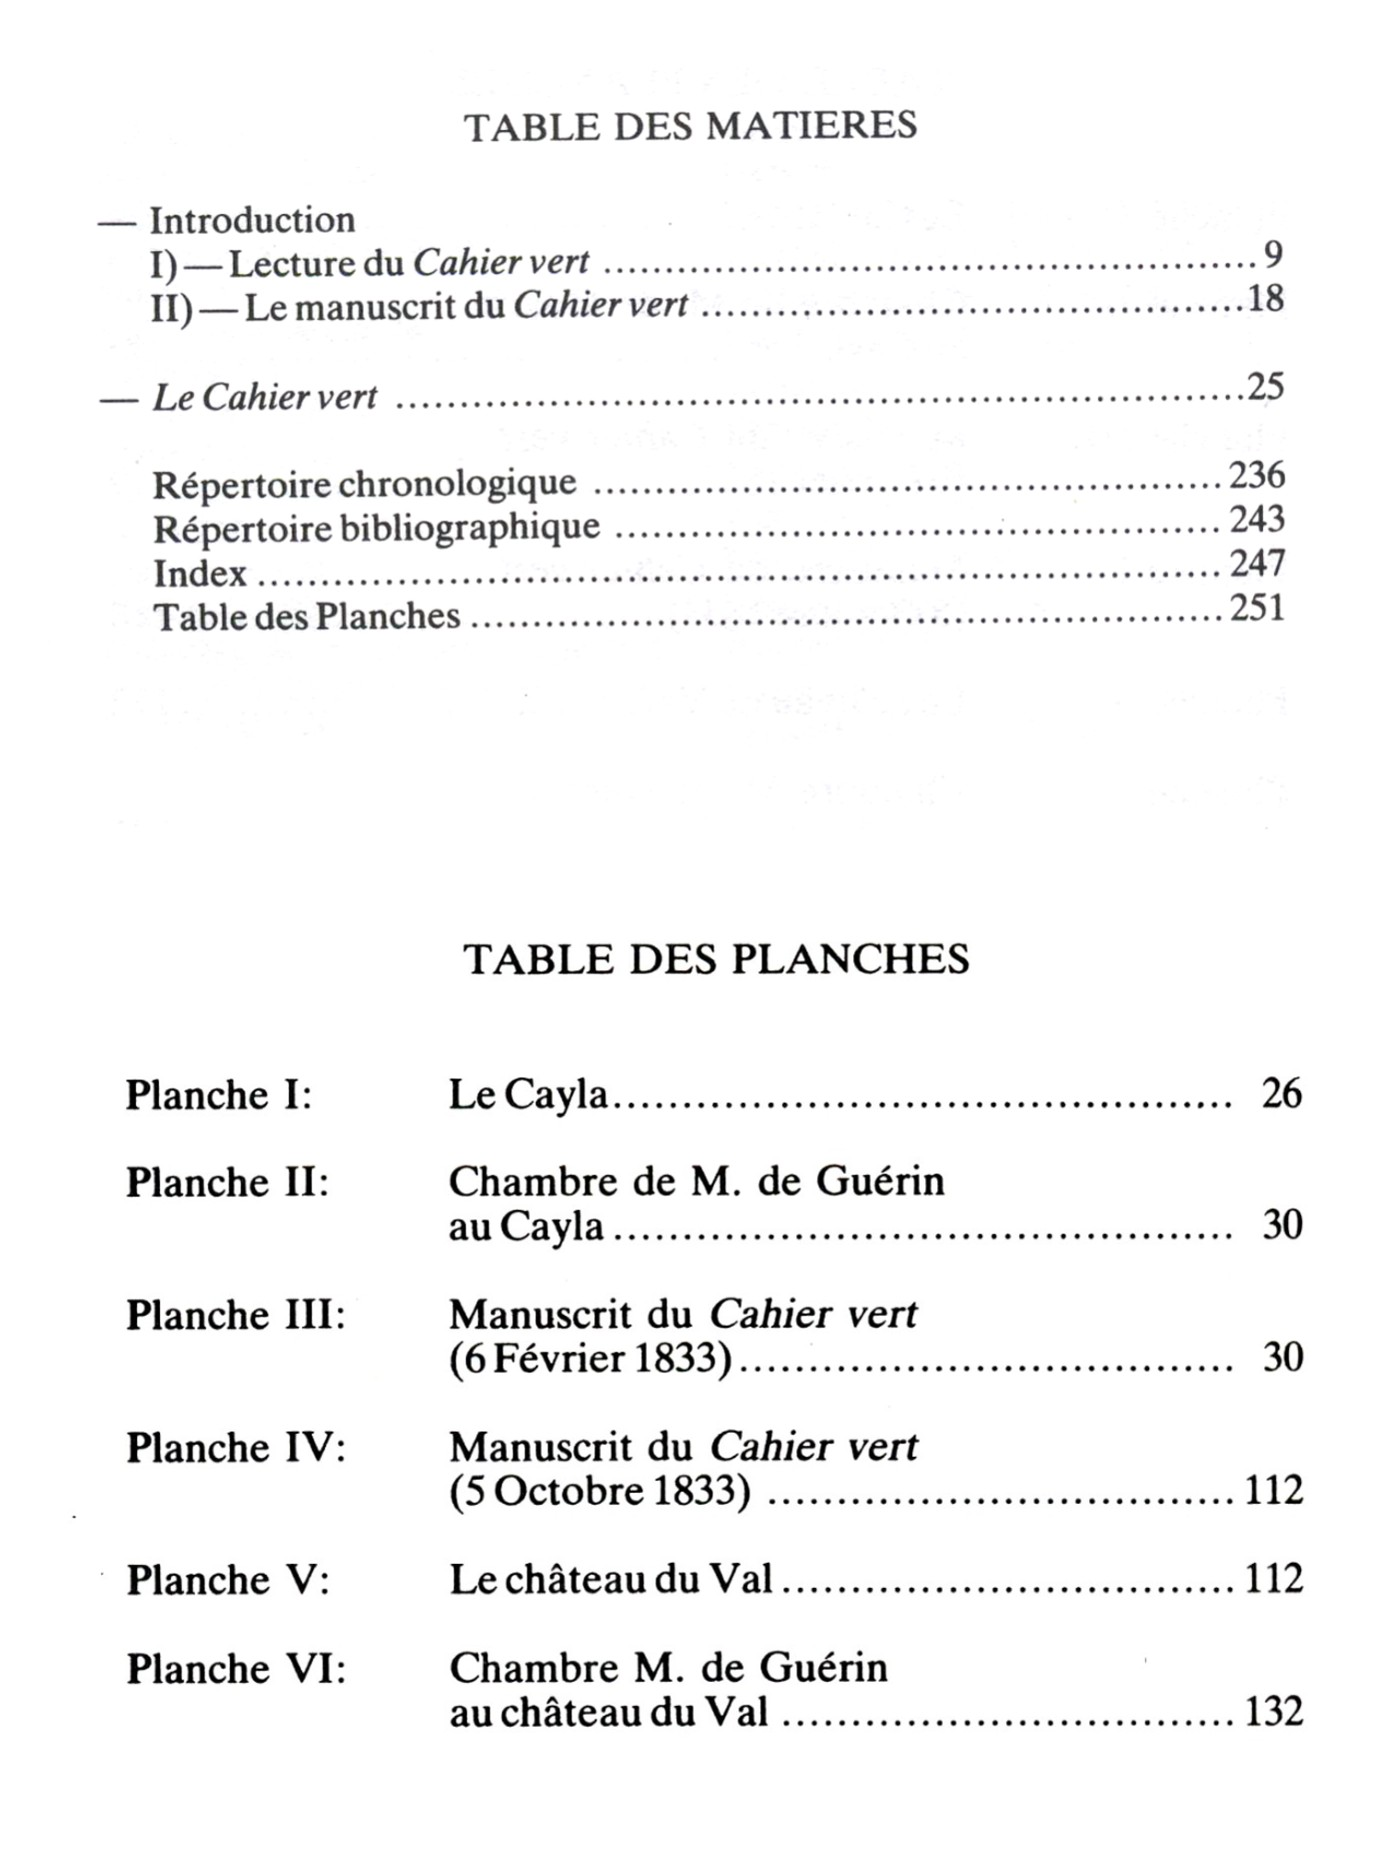 Cahier vert_Tables